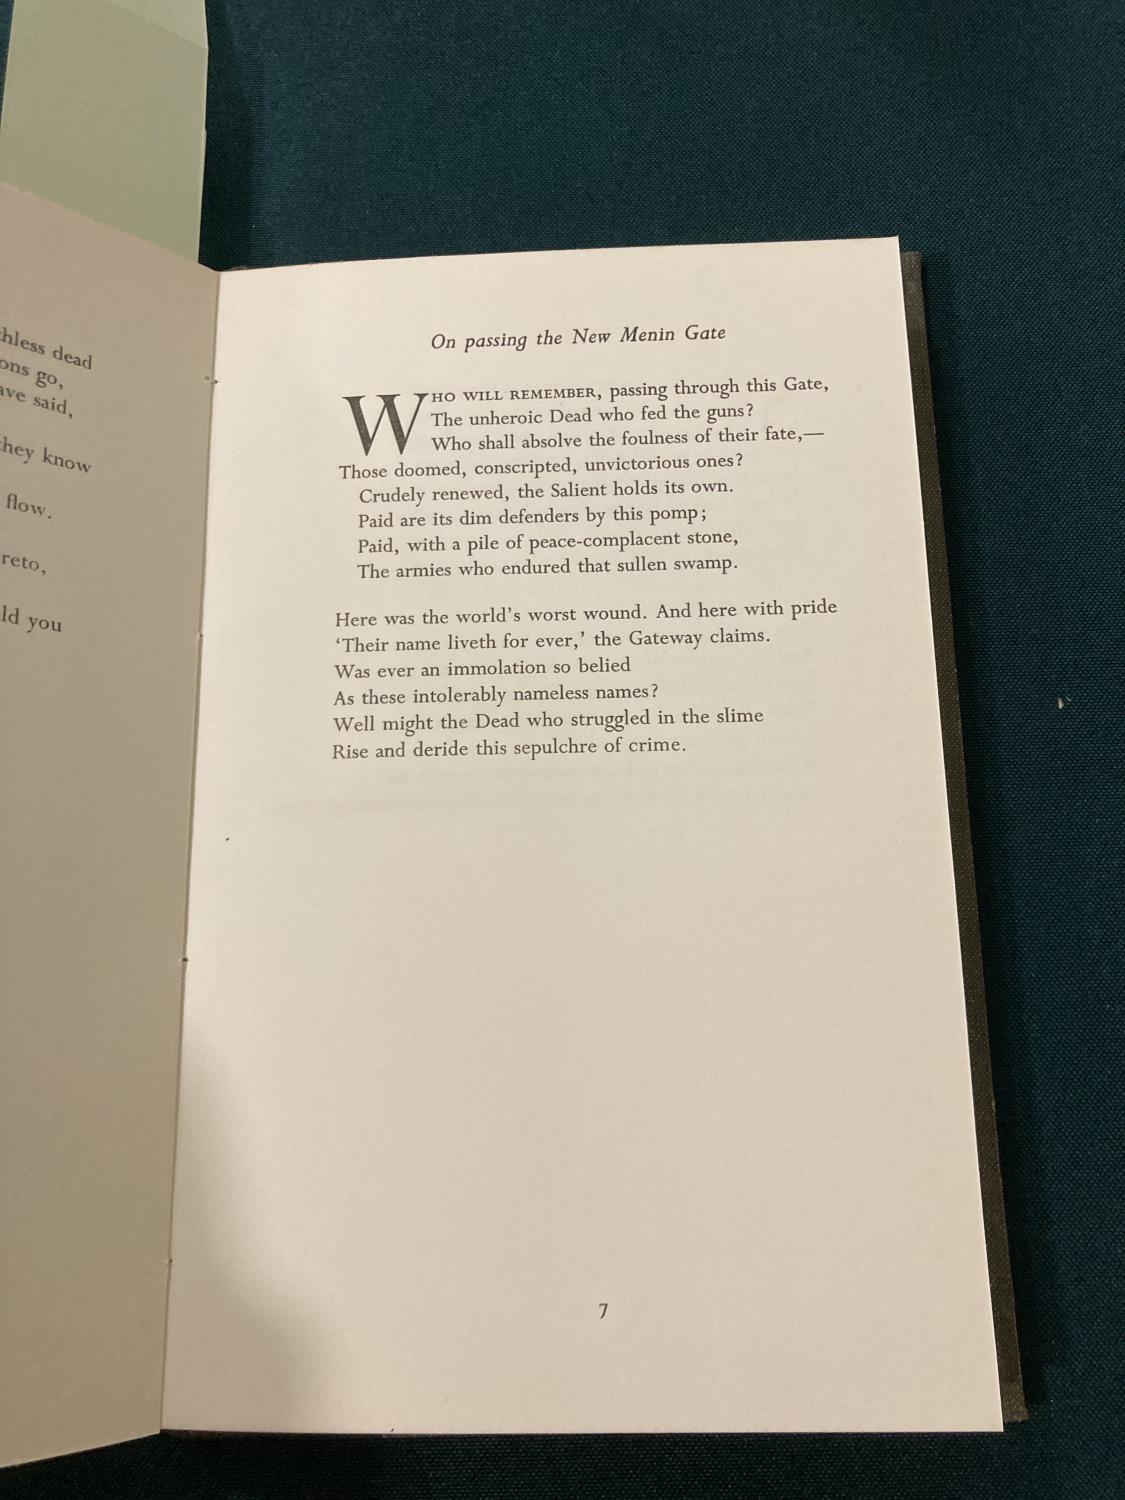 Sorley, Charles Hamilton. Marlborough and other poems, first edition, photographic portrait - Image 4 of 9